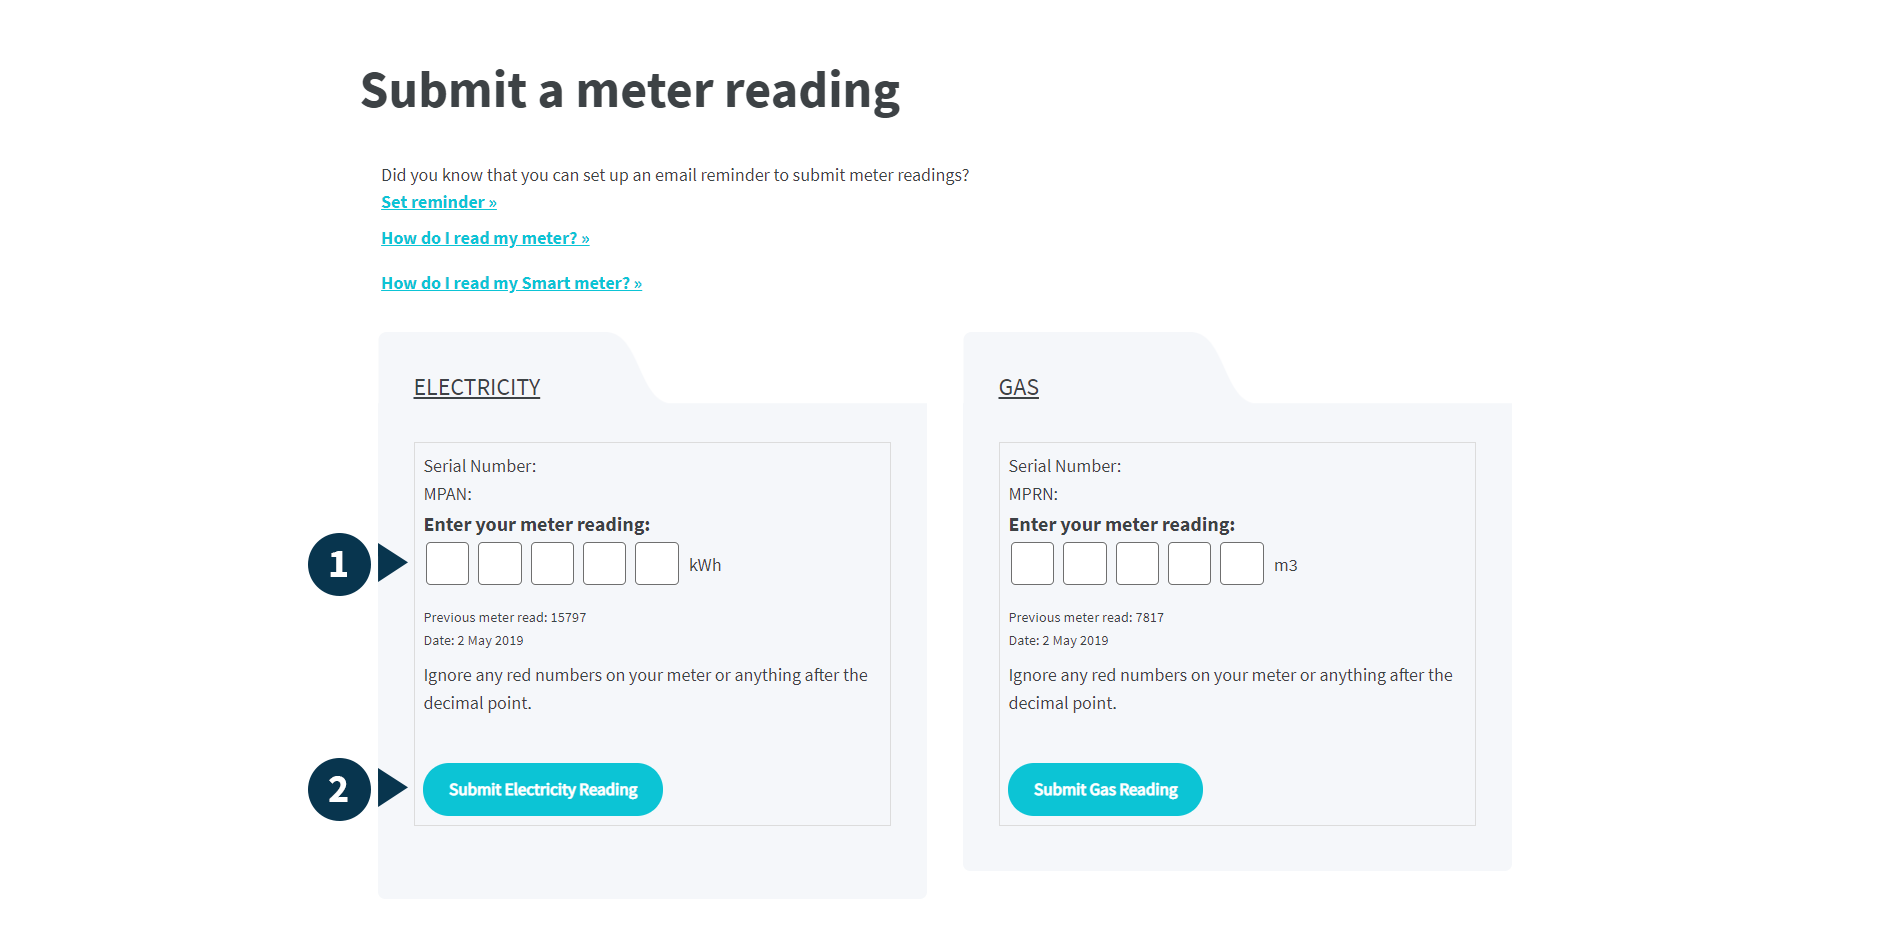 A screenshot example of meter reading submission page, with meter reading fields and submission button numbered 1 to 2